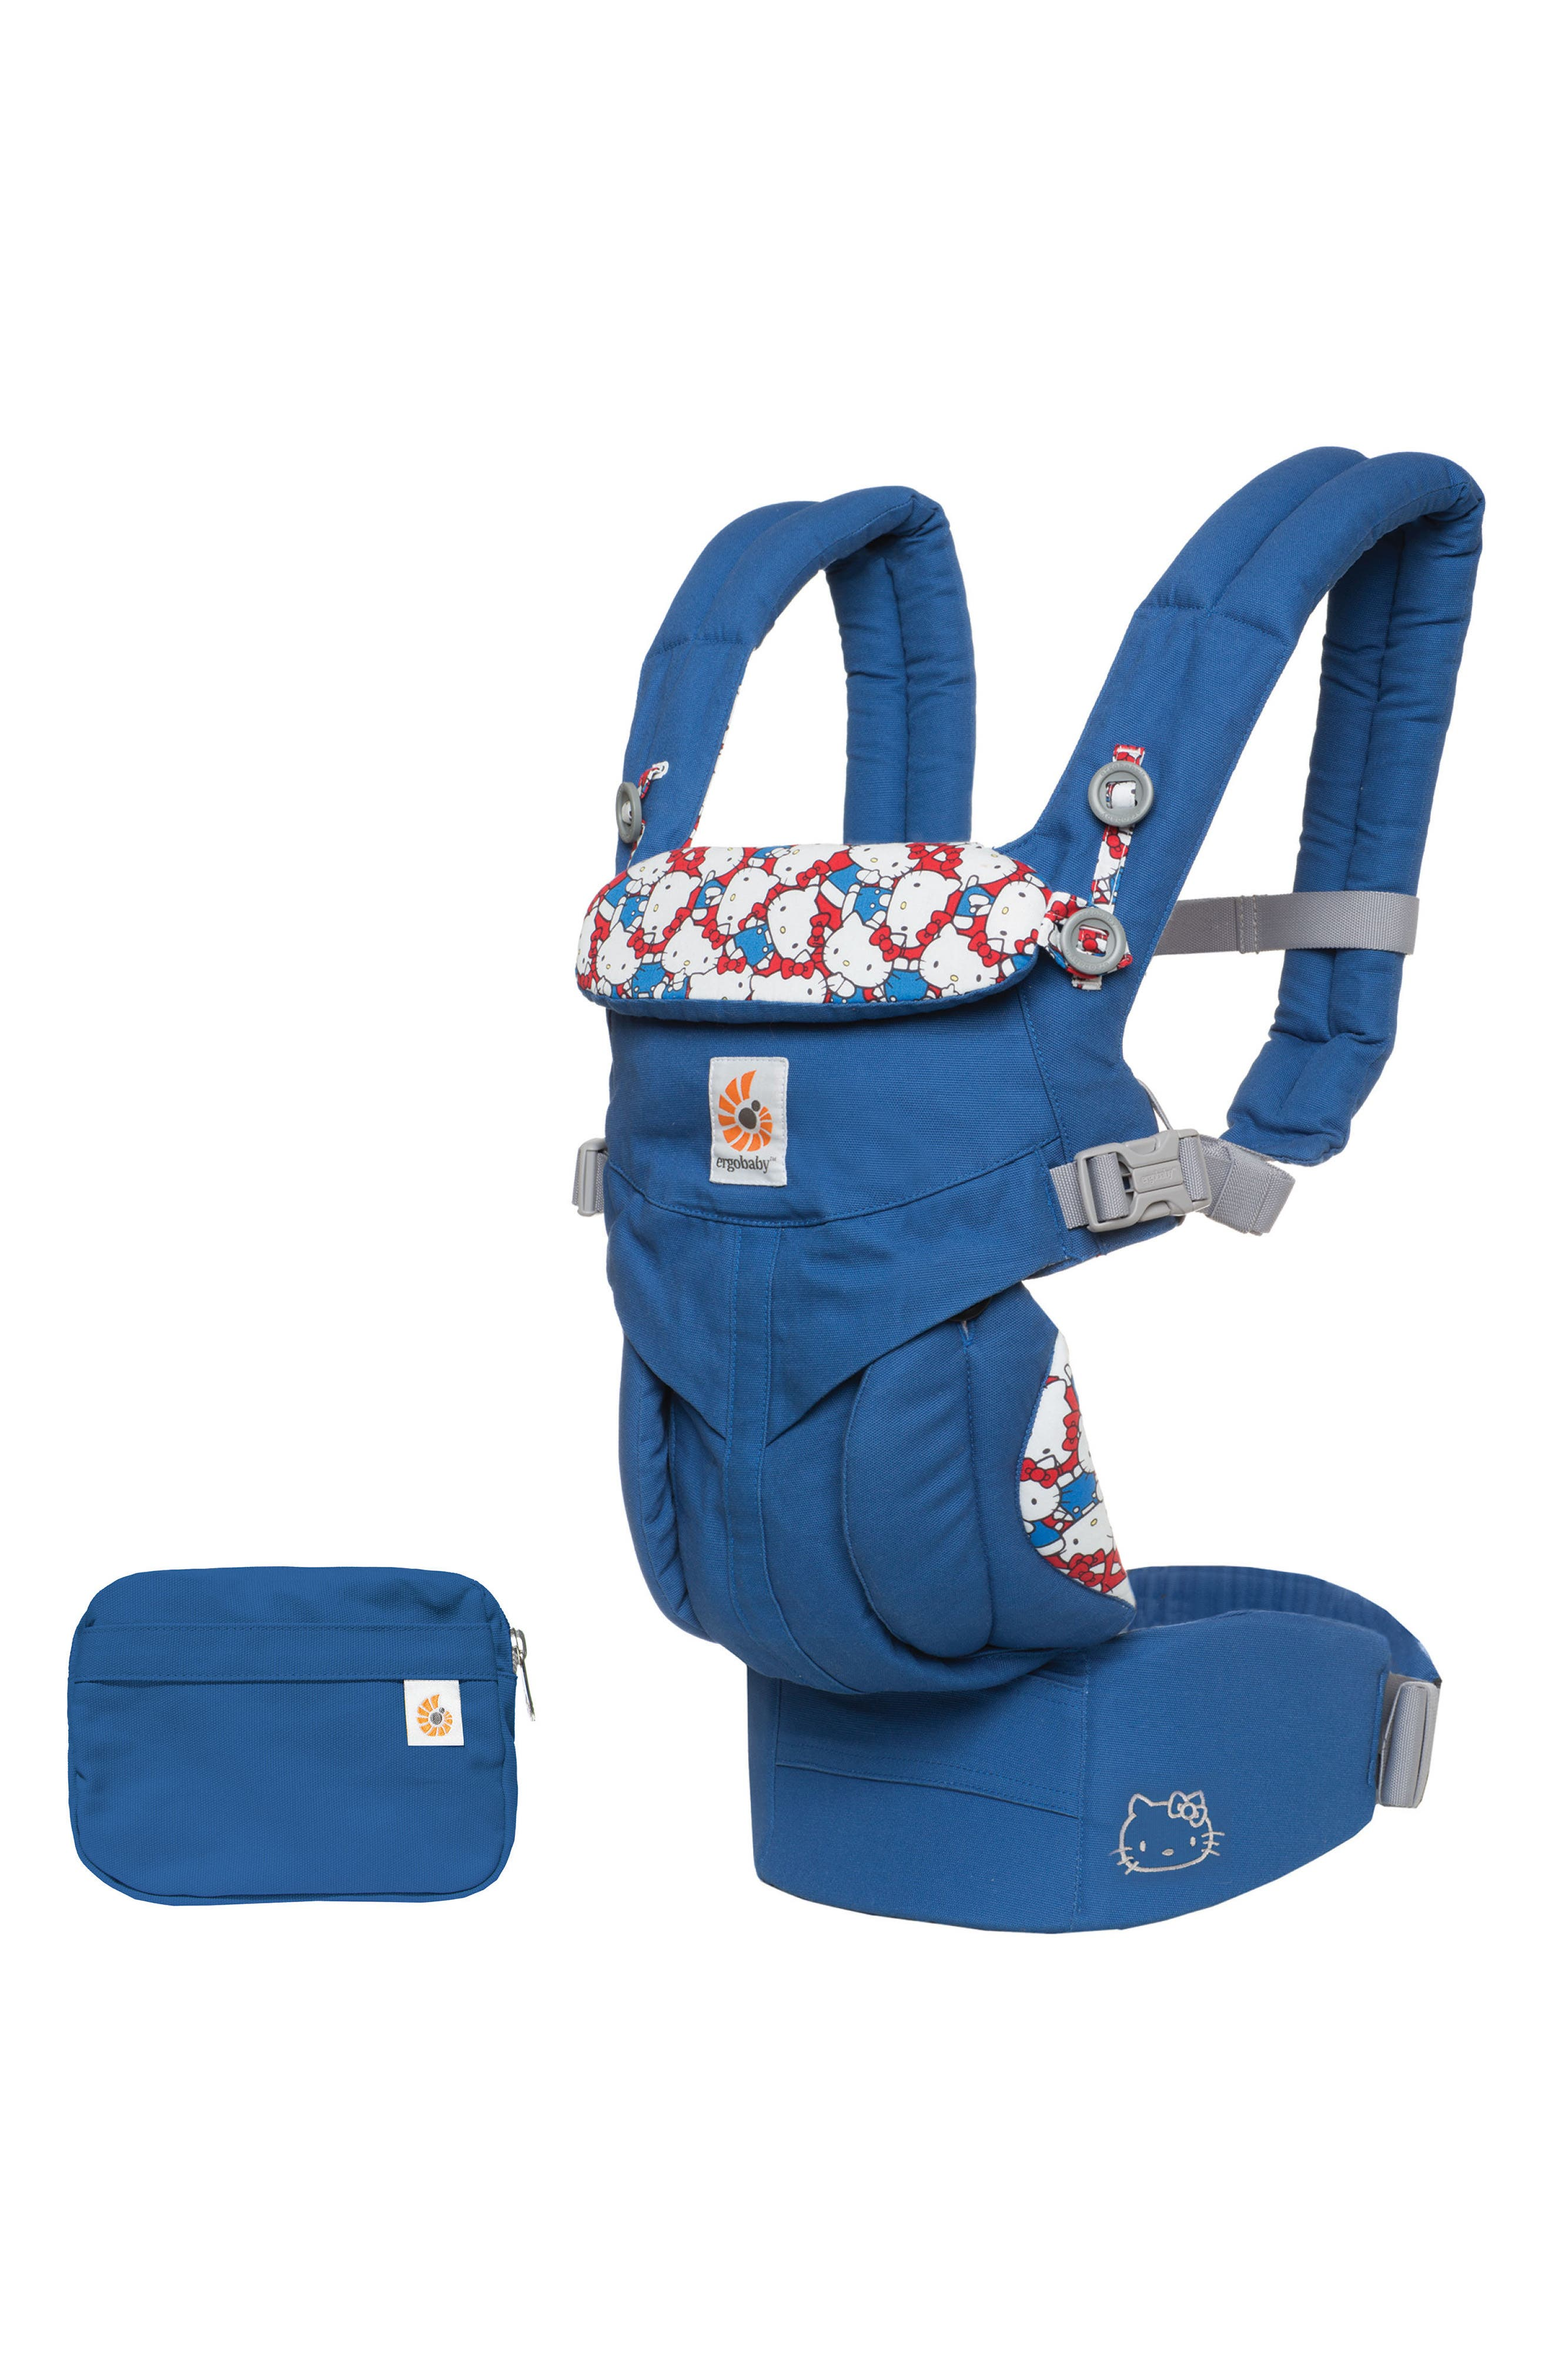 x Hello Kitty<sup>®</sup> Omni 360 Baby Carrier,                             Main thumbnail 1, color,                             420